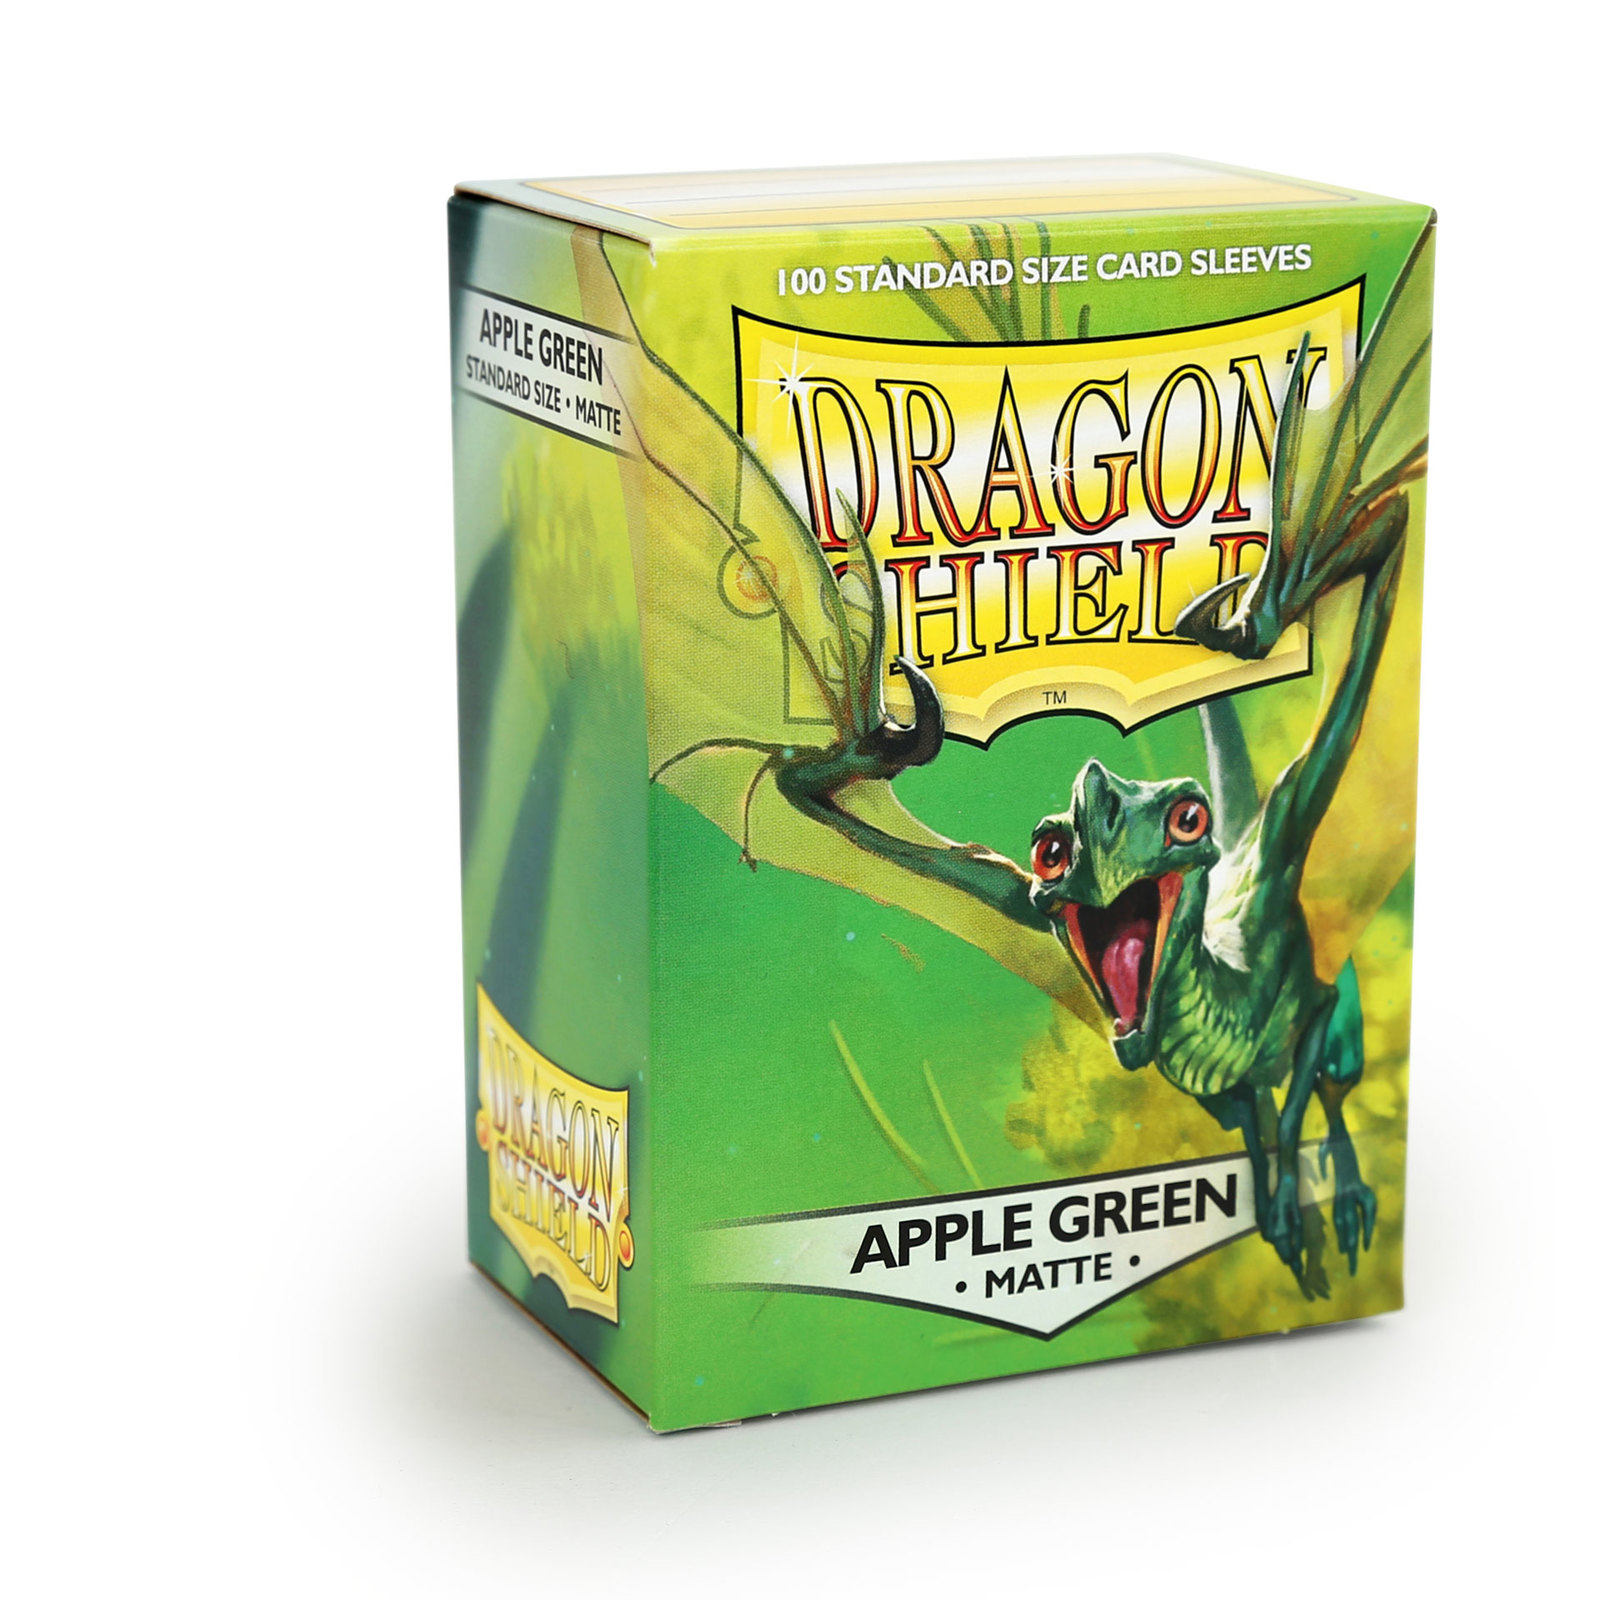 Dragon Shield Matte Apple Green Sleeves image